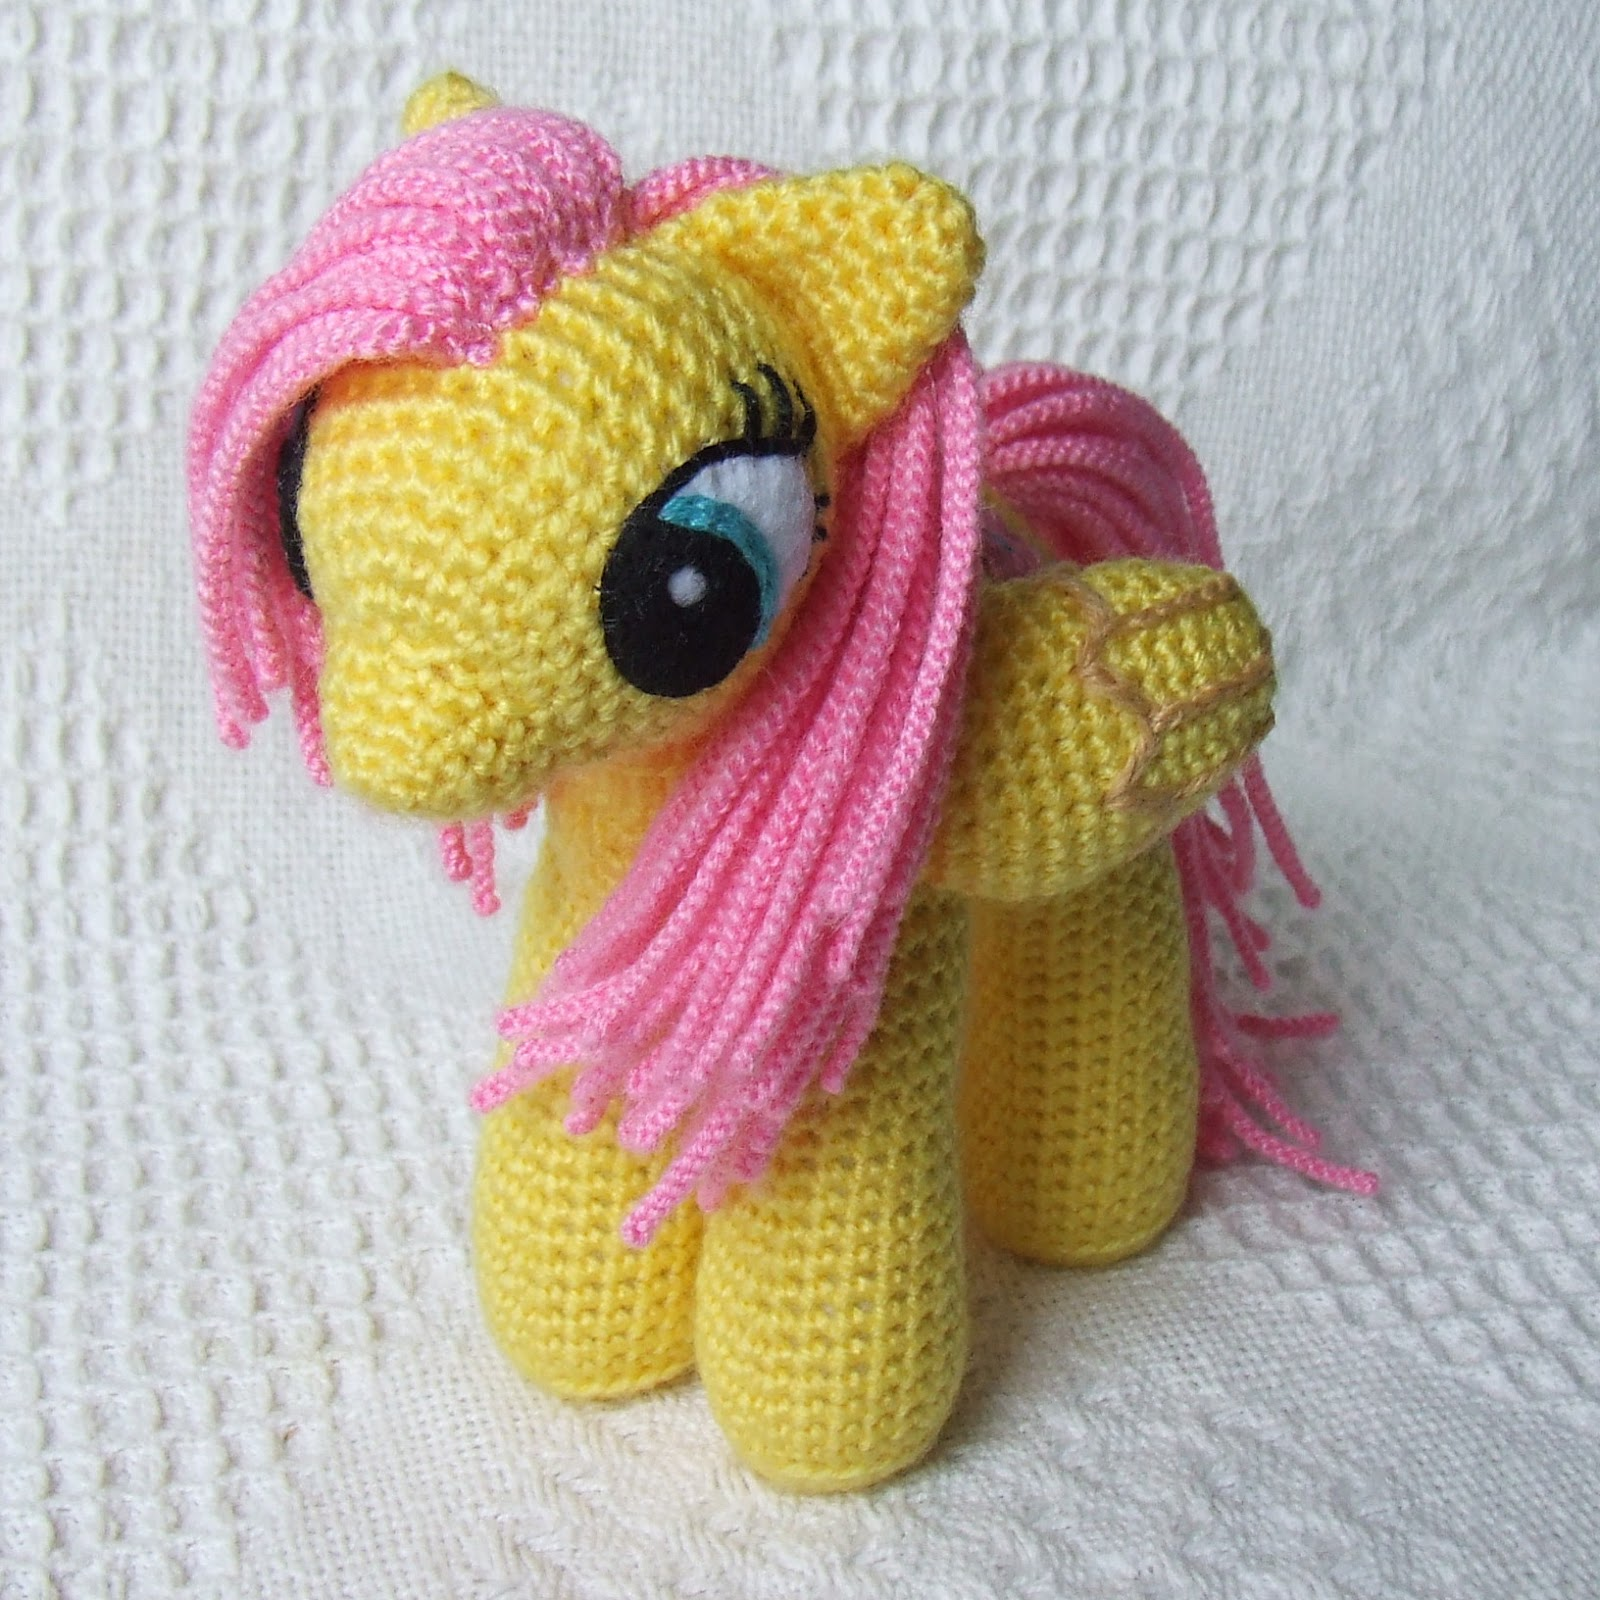 Free Crochet Pattern For My Little Pony Eyes : Knit One Awe Some: My Little Pony: Friendship is Magic